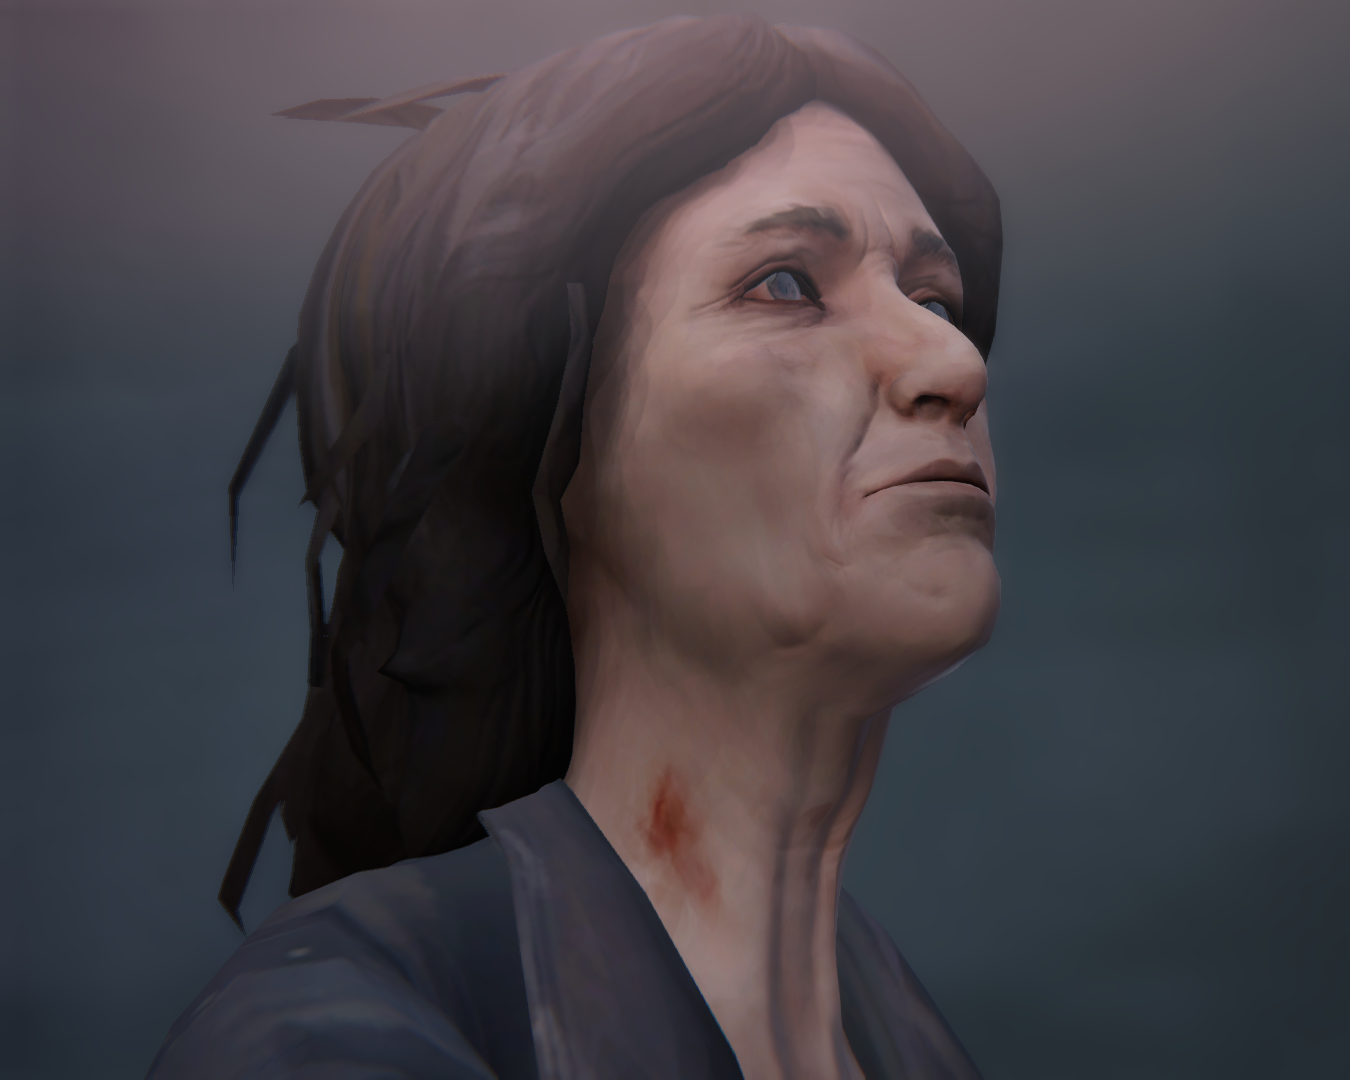 File:Homeless Lady.png